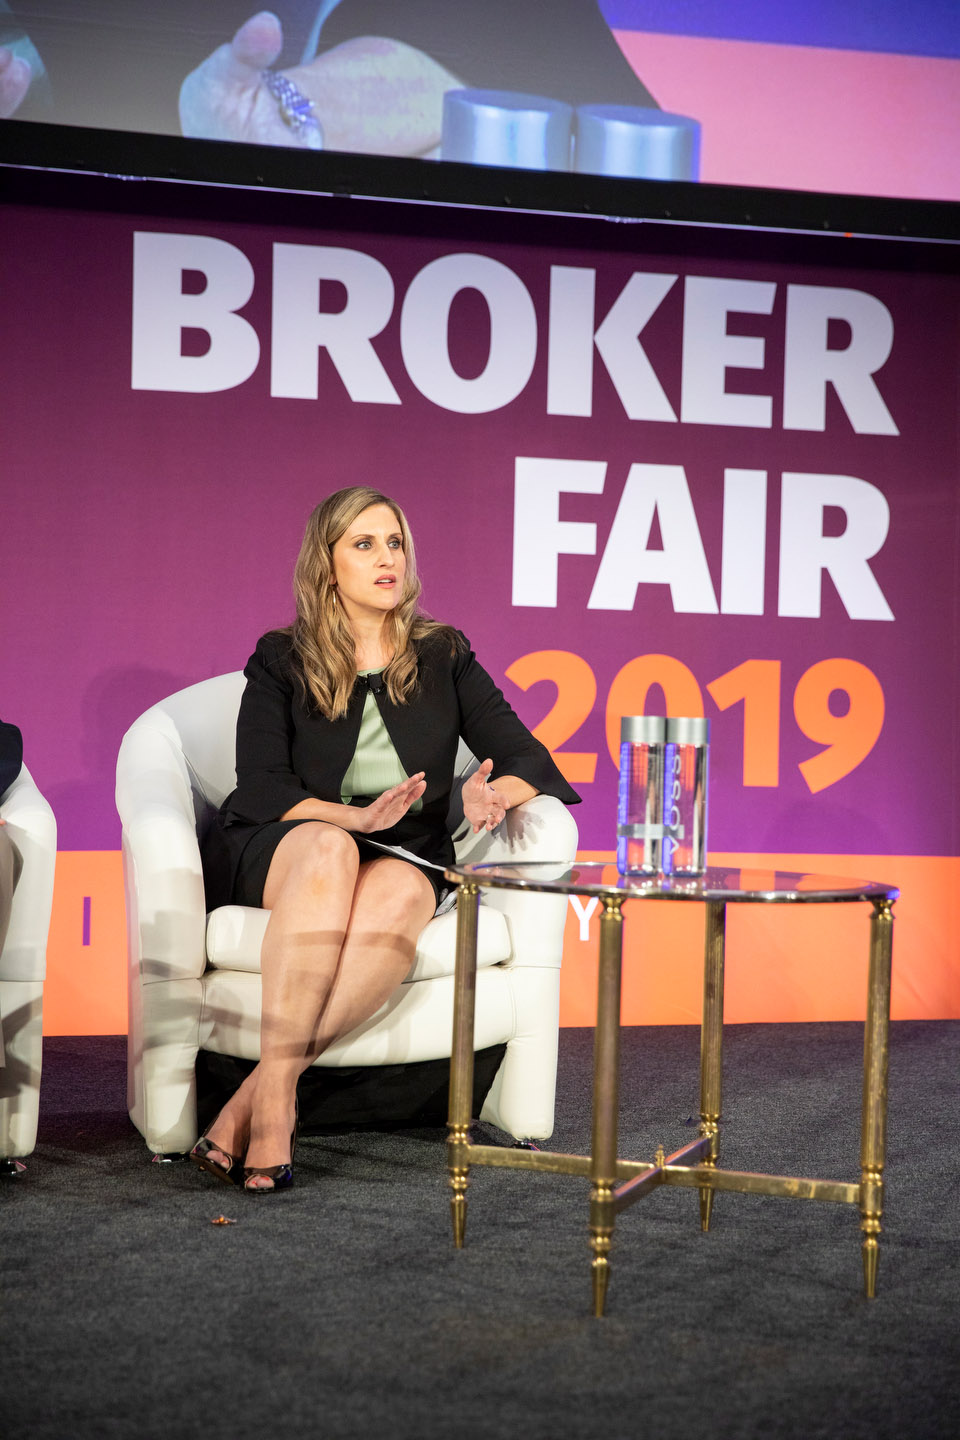 Broker Fair 2019 - Presented by deBanked - 249